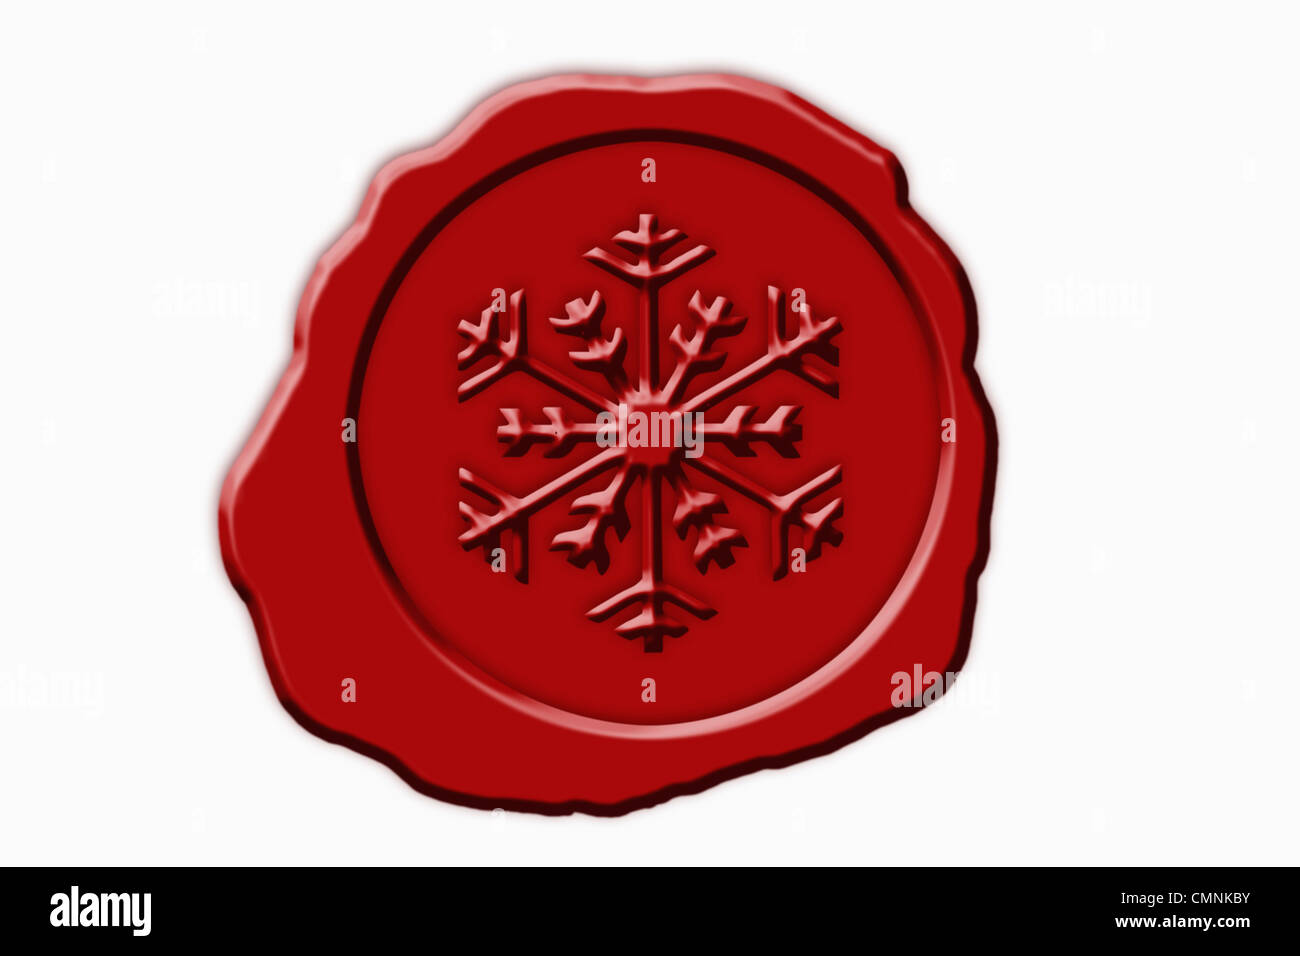 Detail photo of a red seal with a snowflake Symbol in the middle, background white. Stock Photo